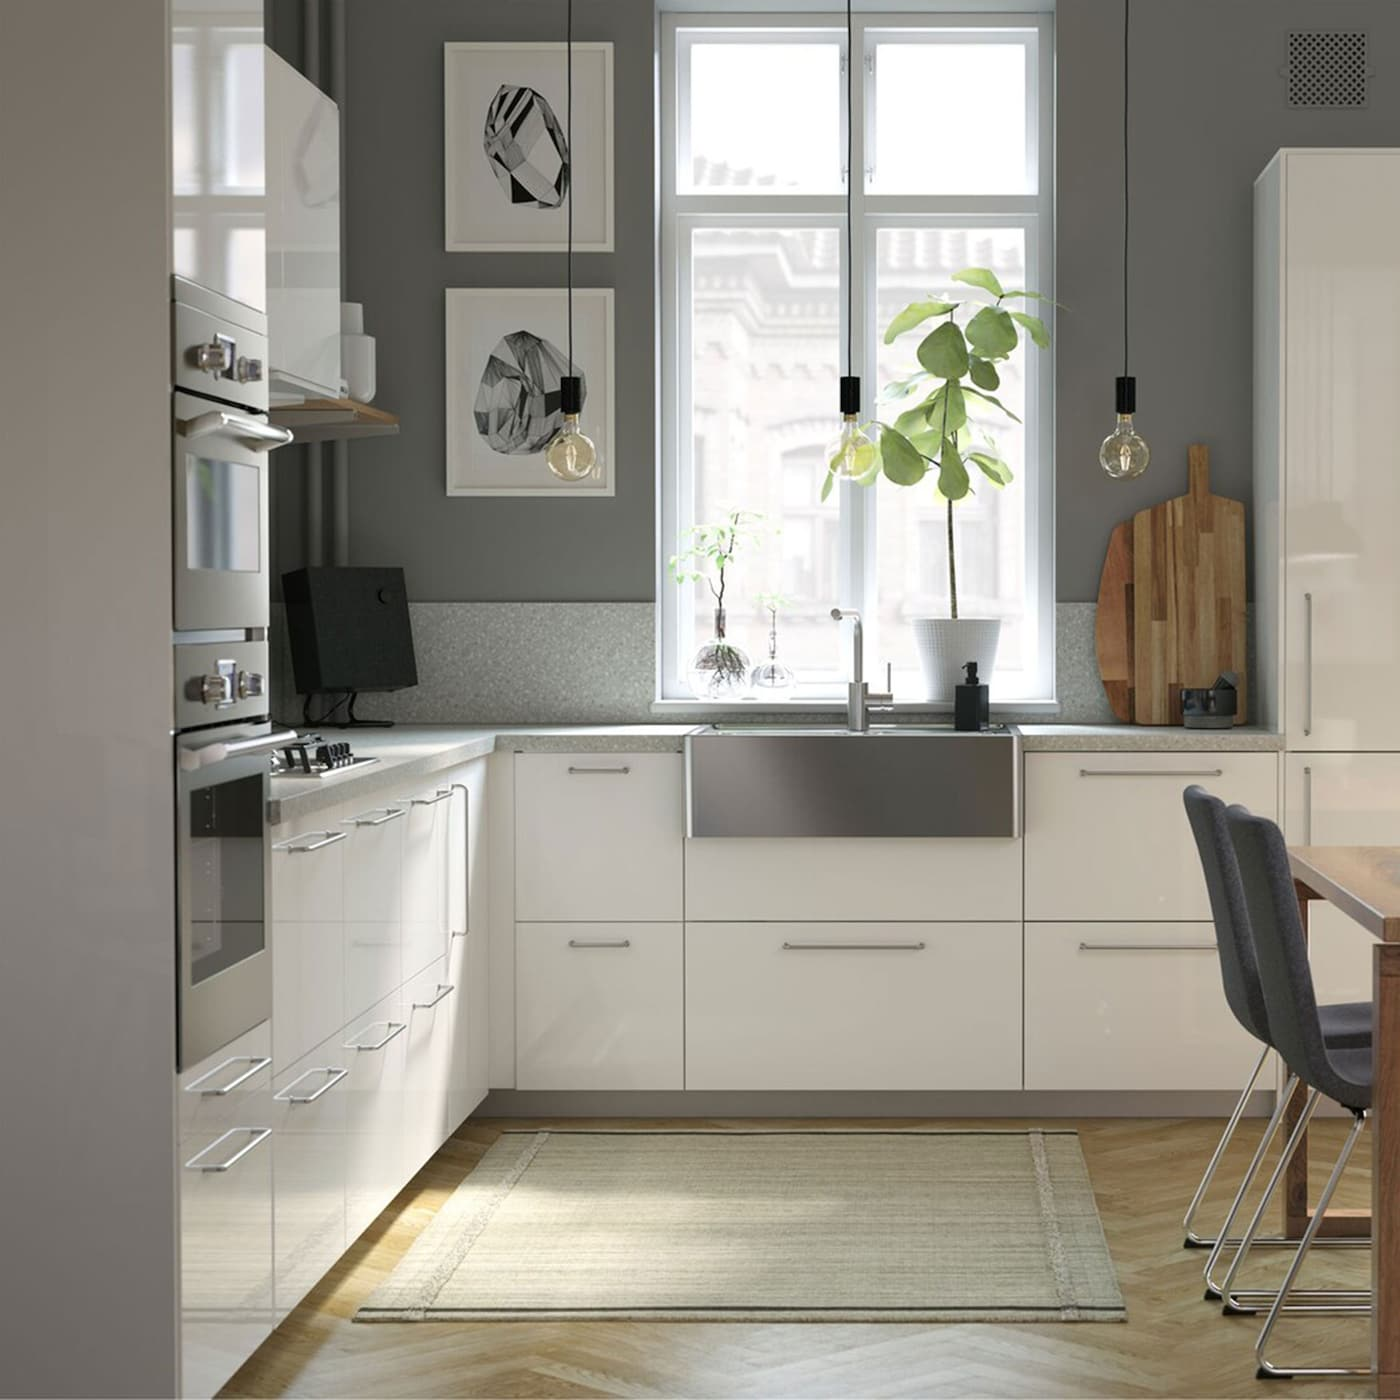 small kitchen storage ideas ikea gallery | A modern, bright, and airy kitchen with wooden detail - IKEA